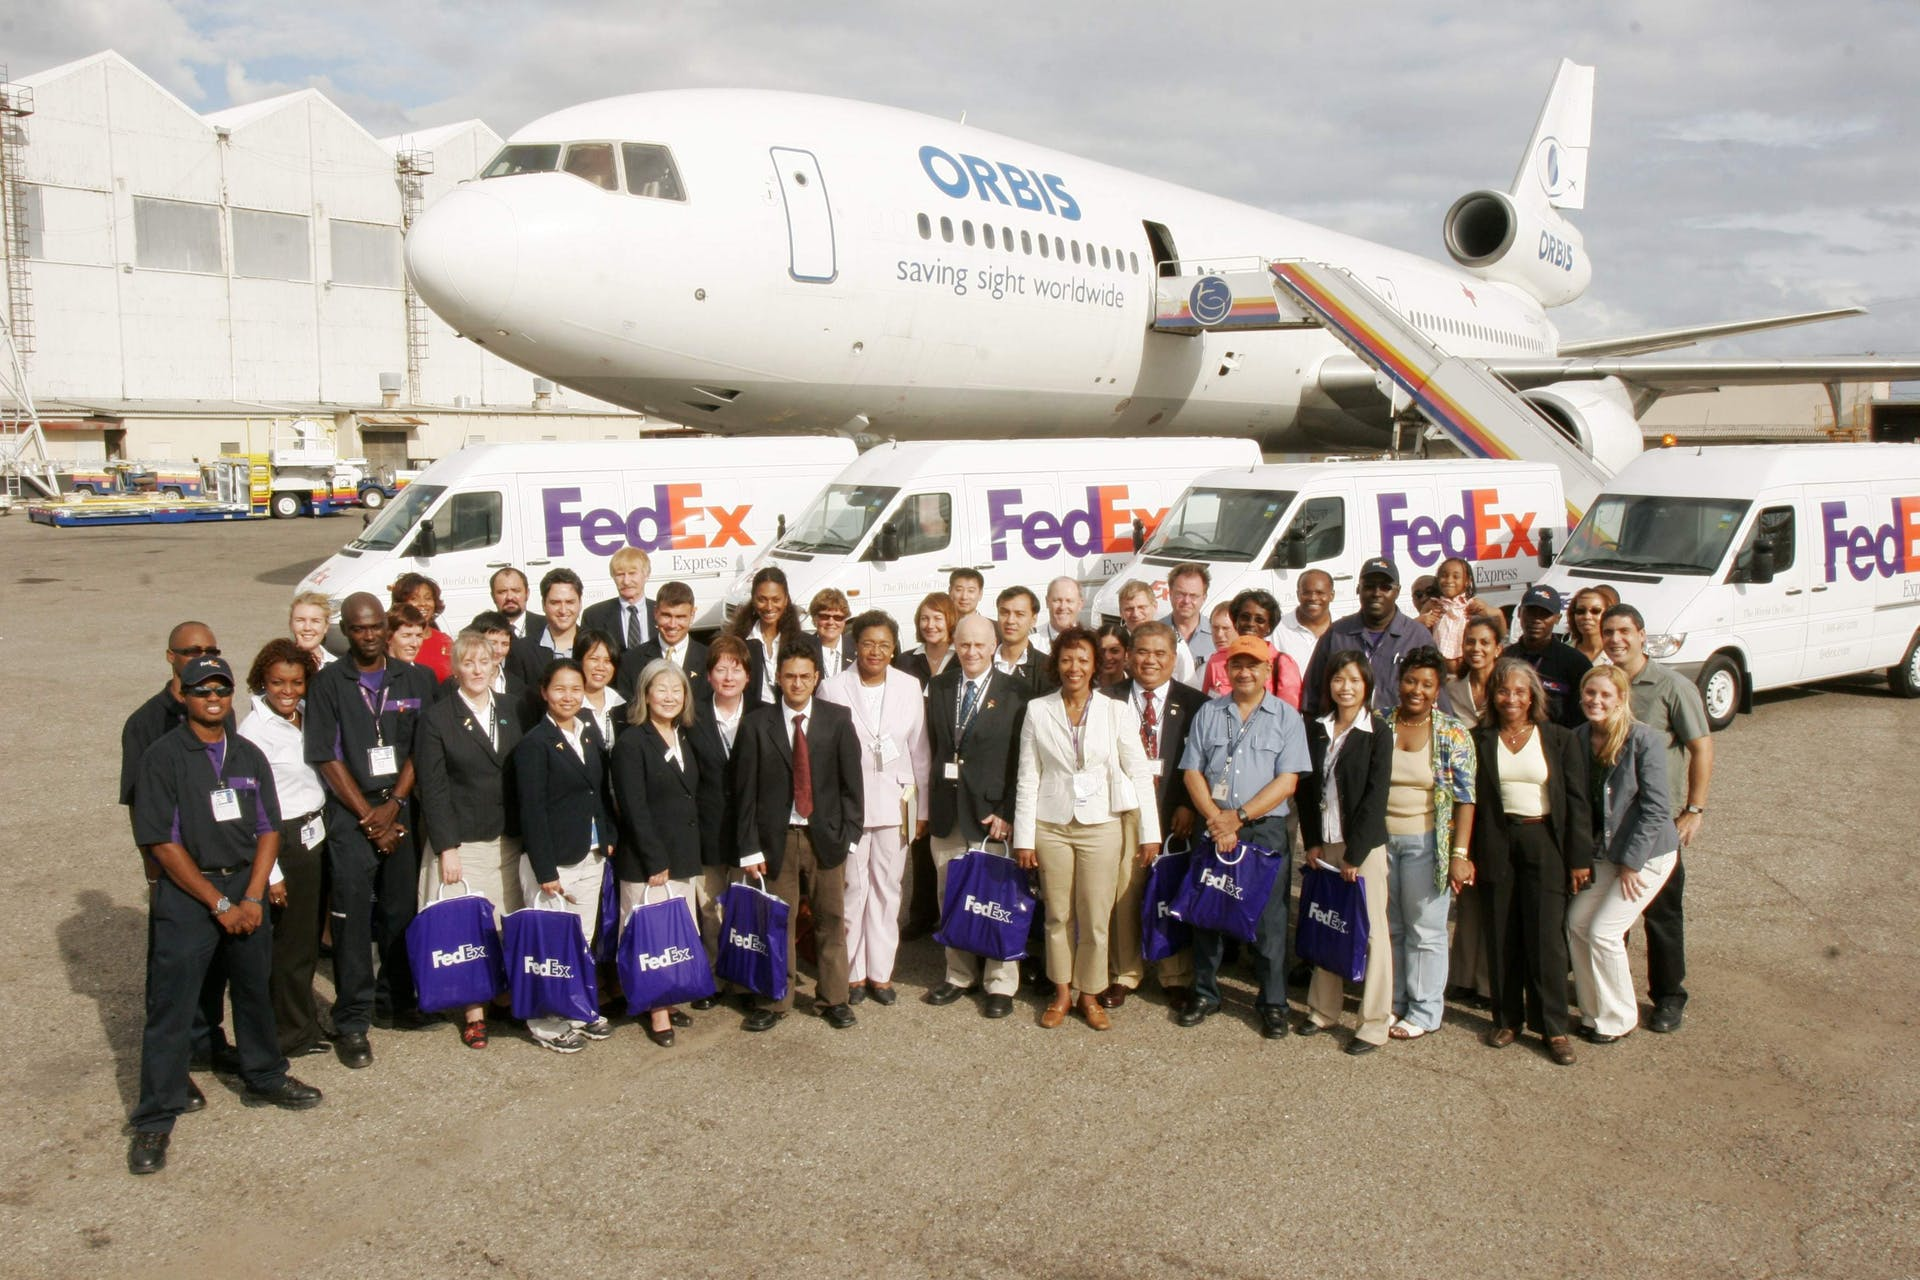 Orbis Flying Eye Hospital in Jamaica 2006 was supported by Fedex